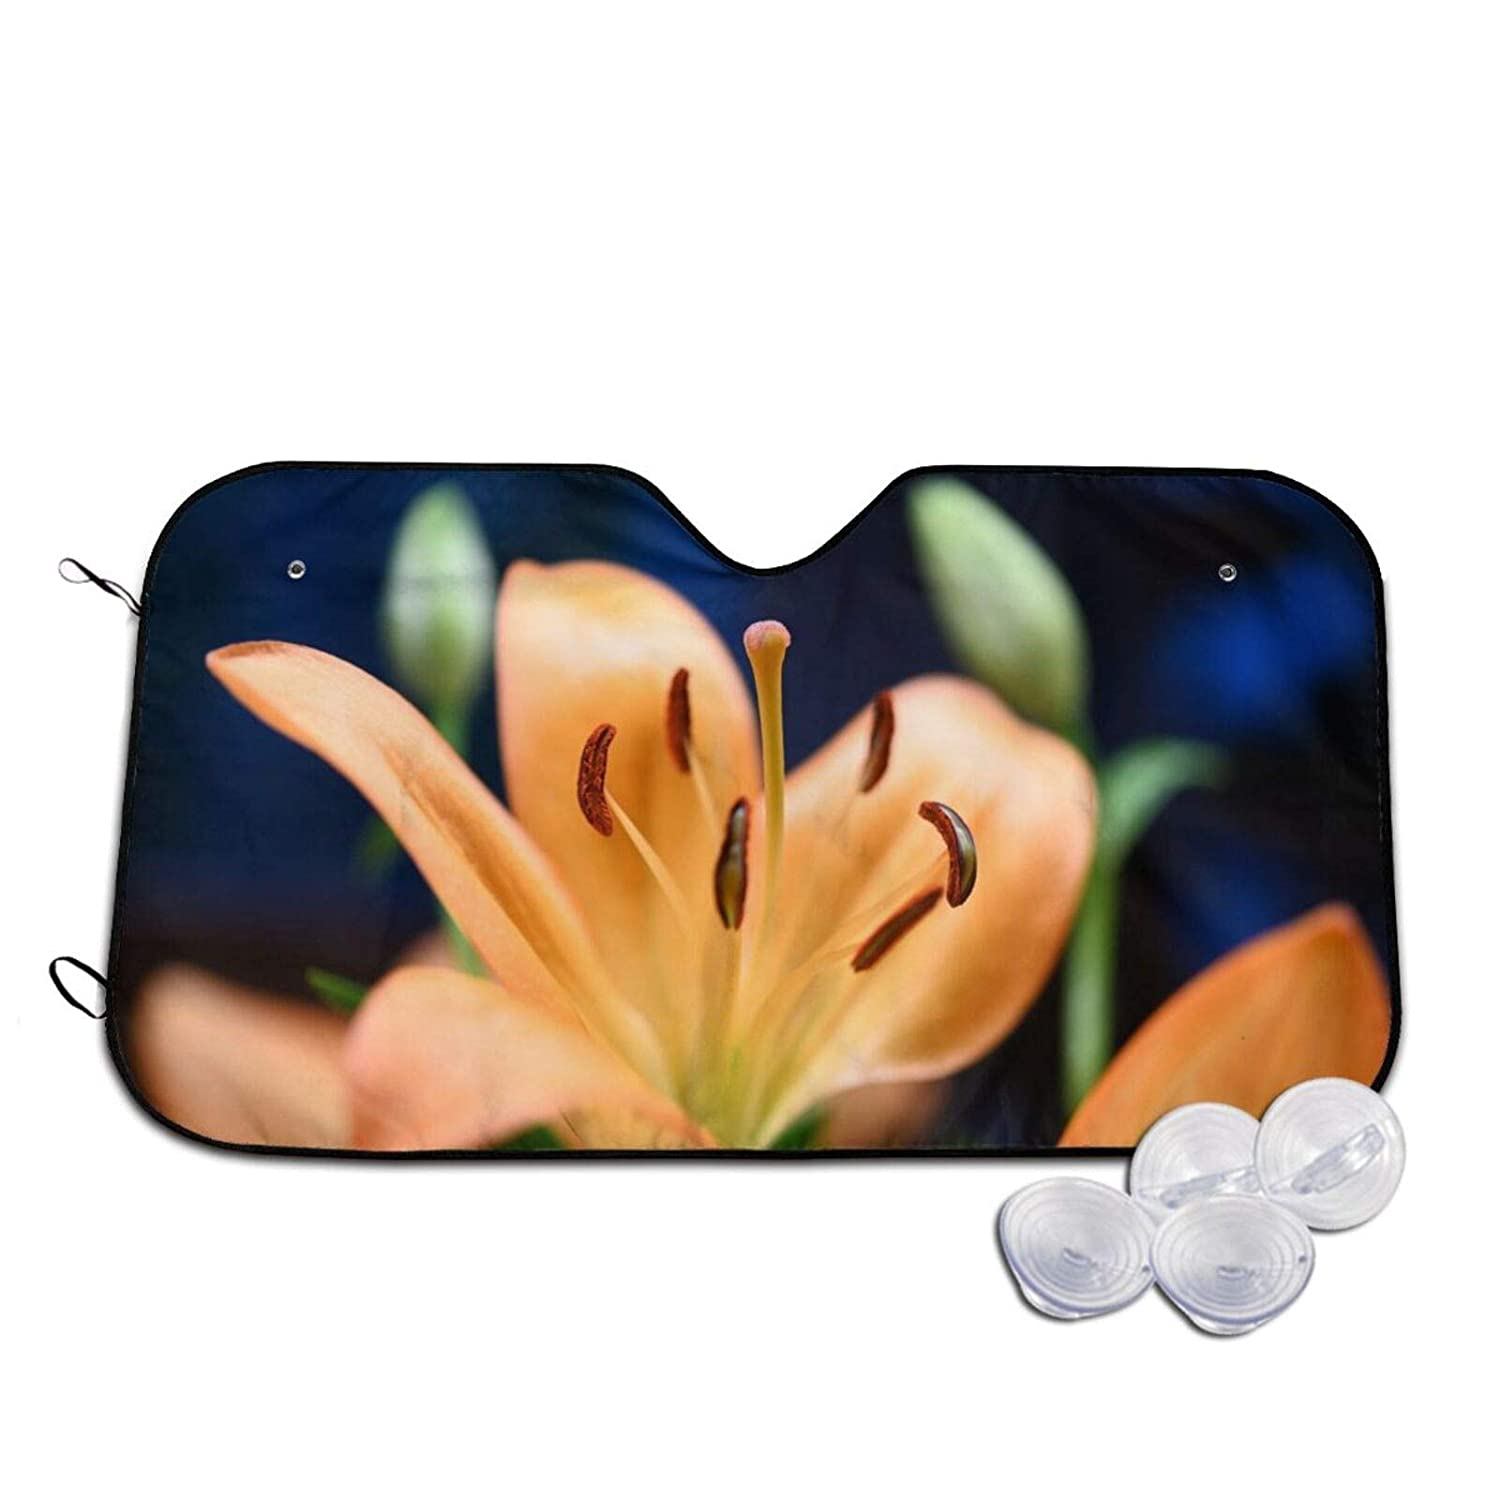 Car Windshield Recommendation Sunshade Lily 5 ☆ very popular Protection Keep to Vehicle Cool The